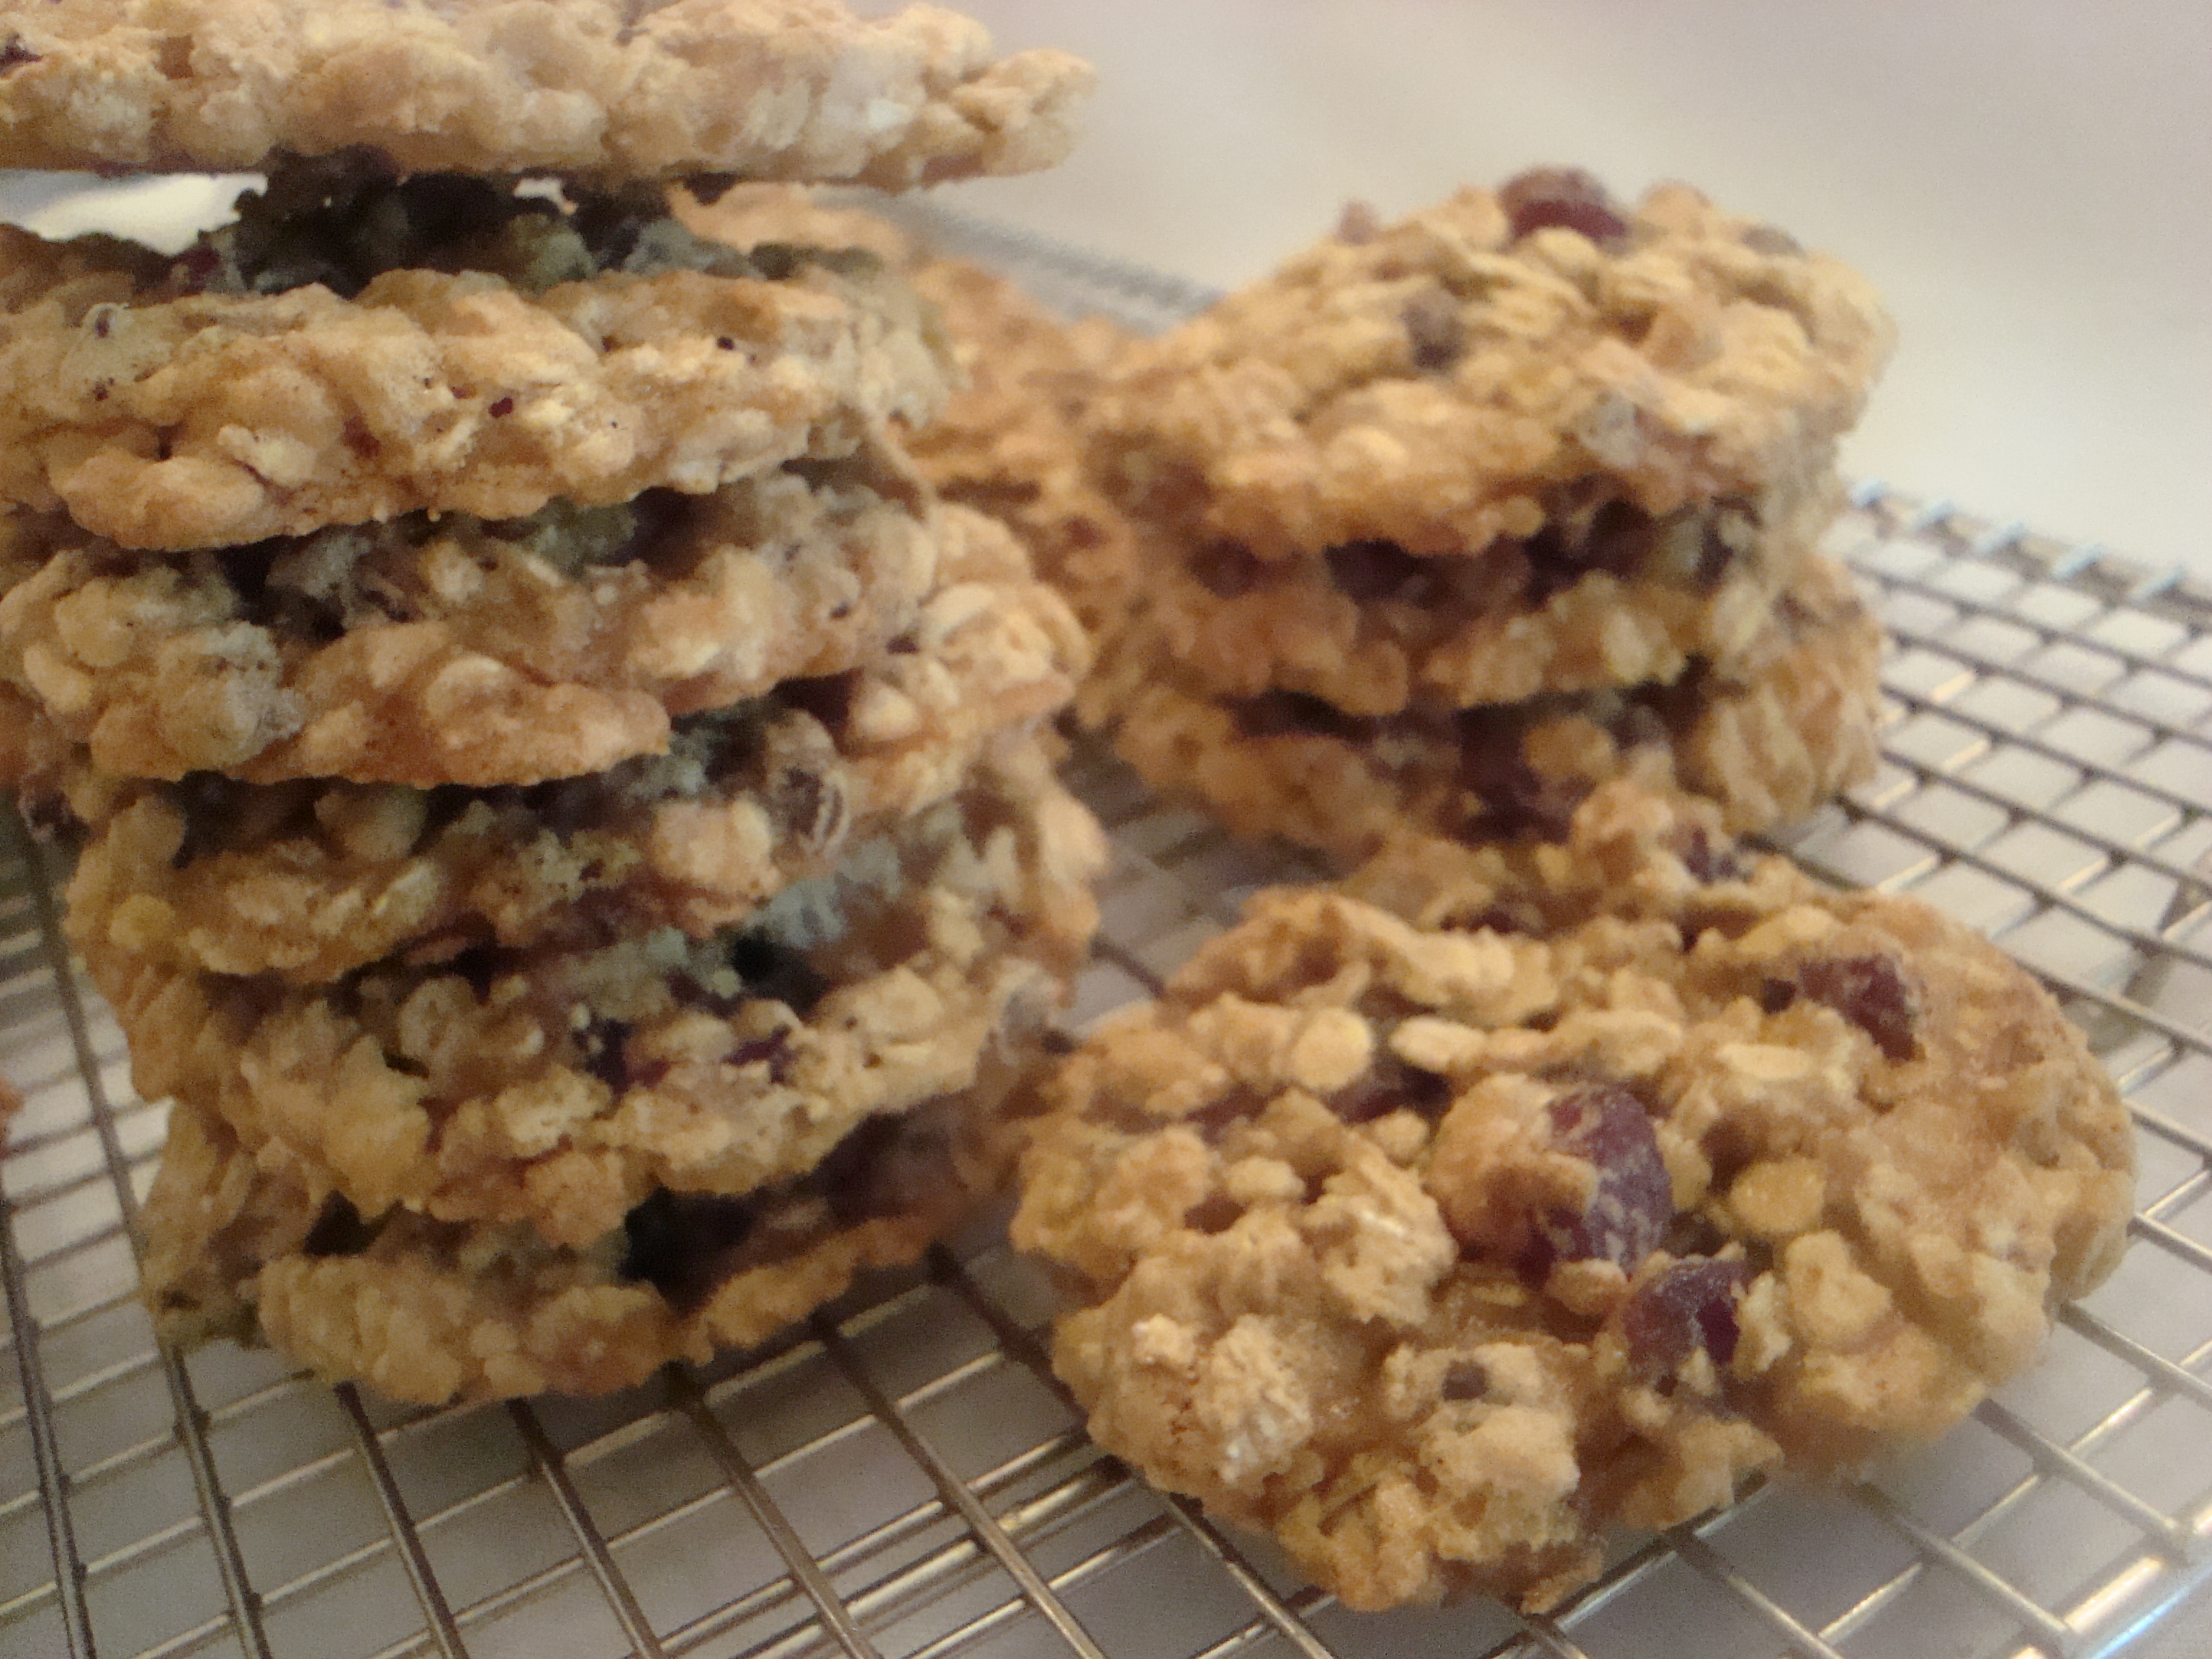 Dried Cherry and Chocolate Chip Oatmeal Cookies